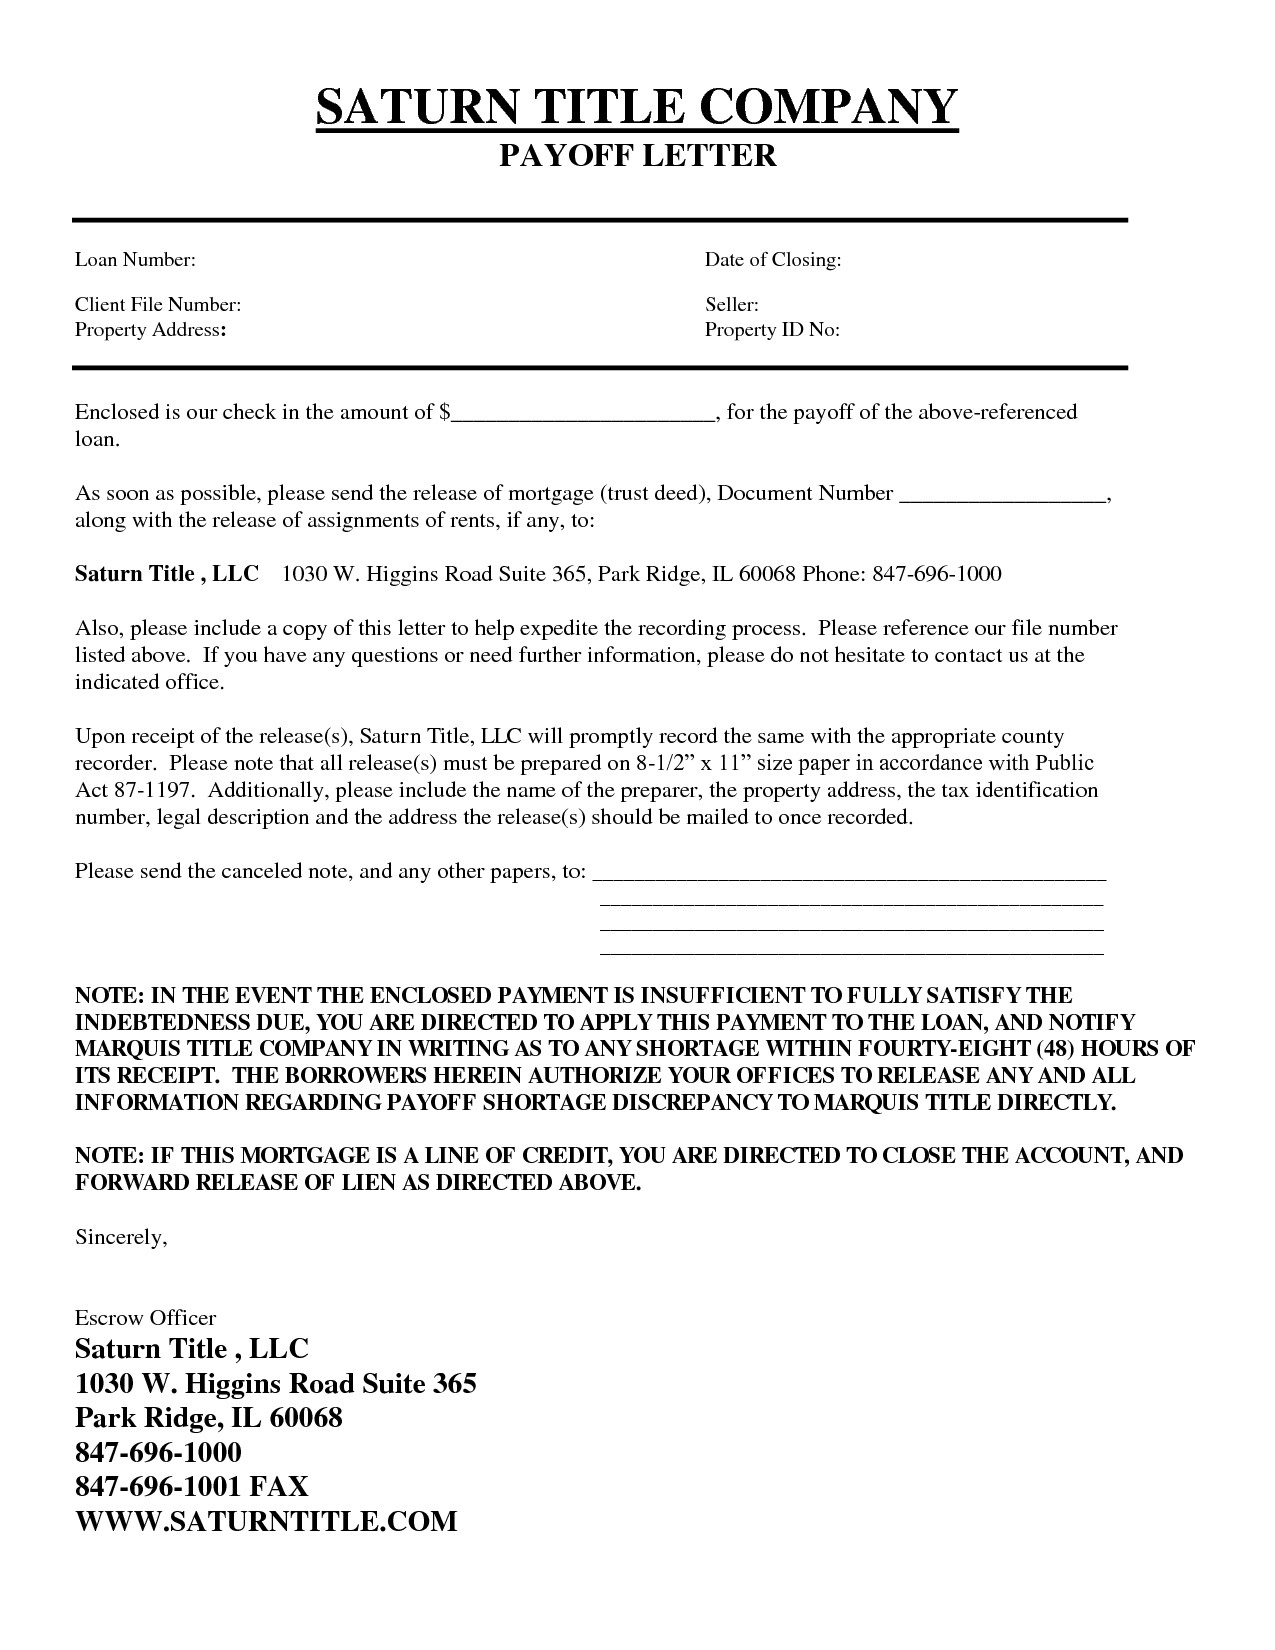 Mortgage Loan Payoff Letter Template - Personal Loan Repayment Letter Sample Koikoikoi Personal Loan